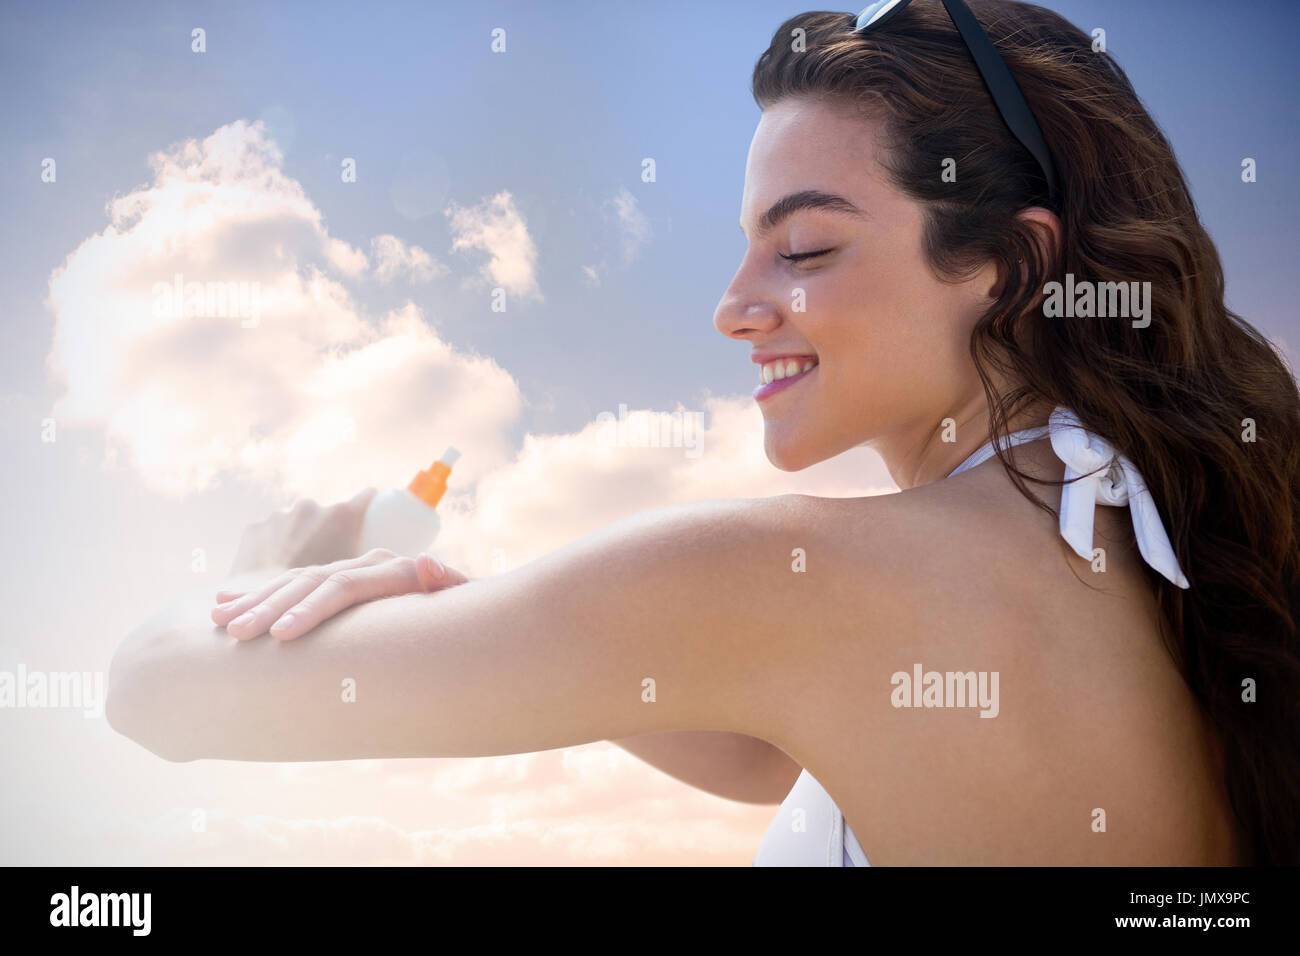 Beautiful women applying suncream against colored sky with clouds - Stock Image